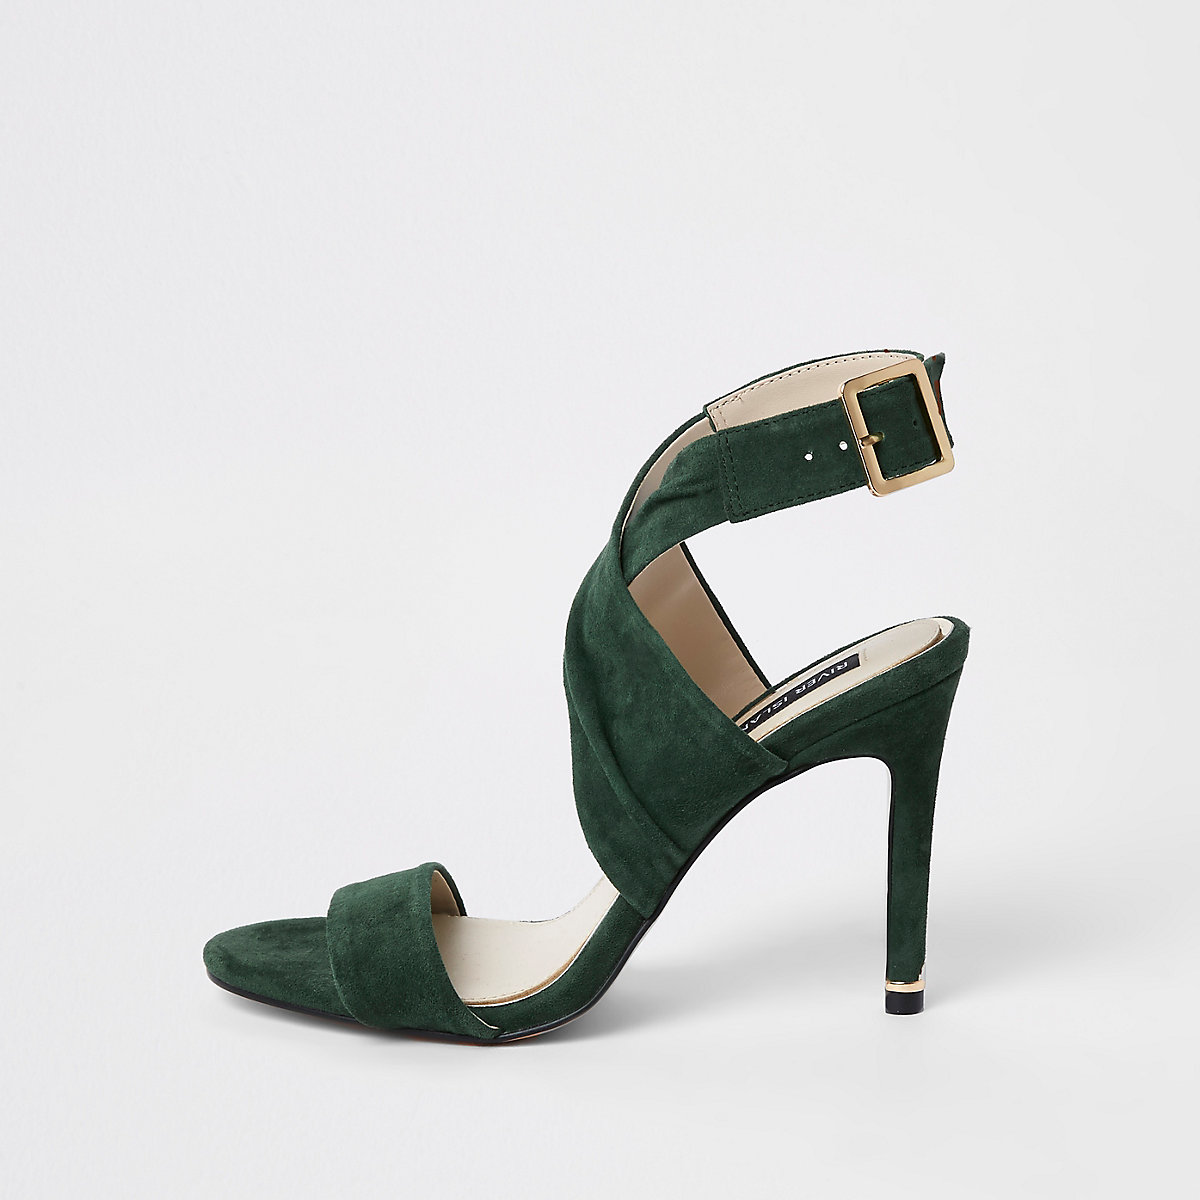 Dark green wrap leather skinny heel sandals